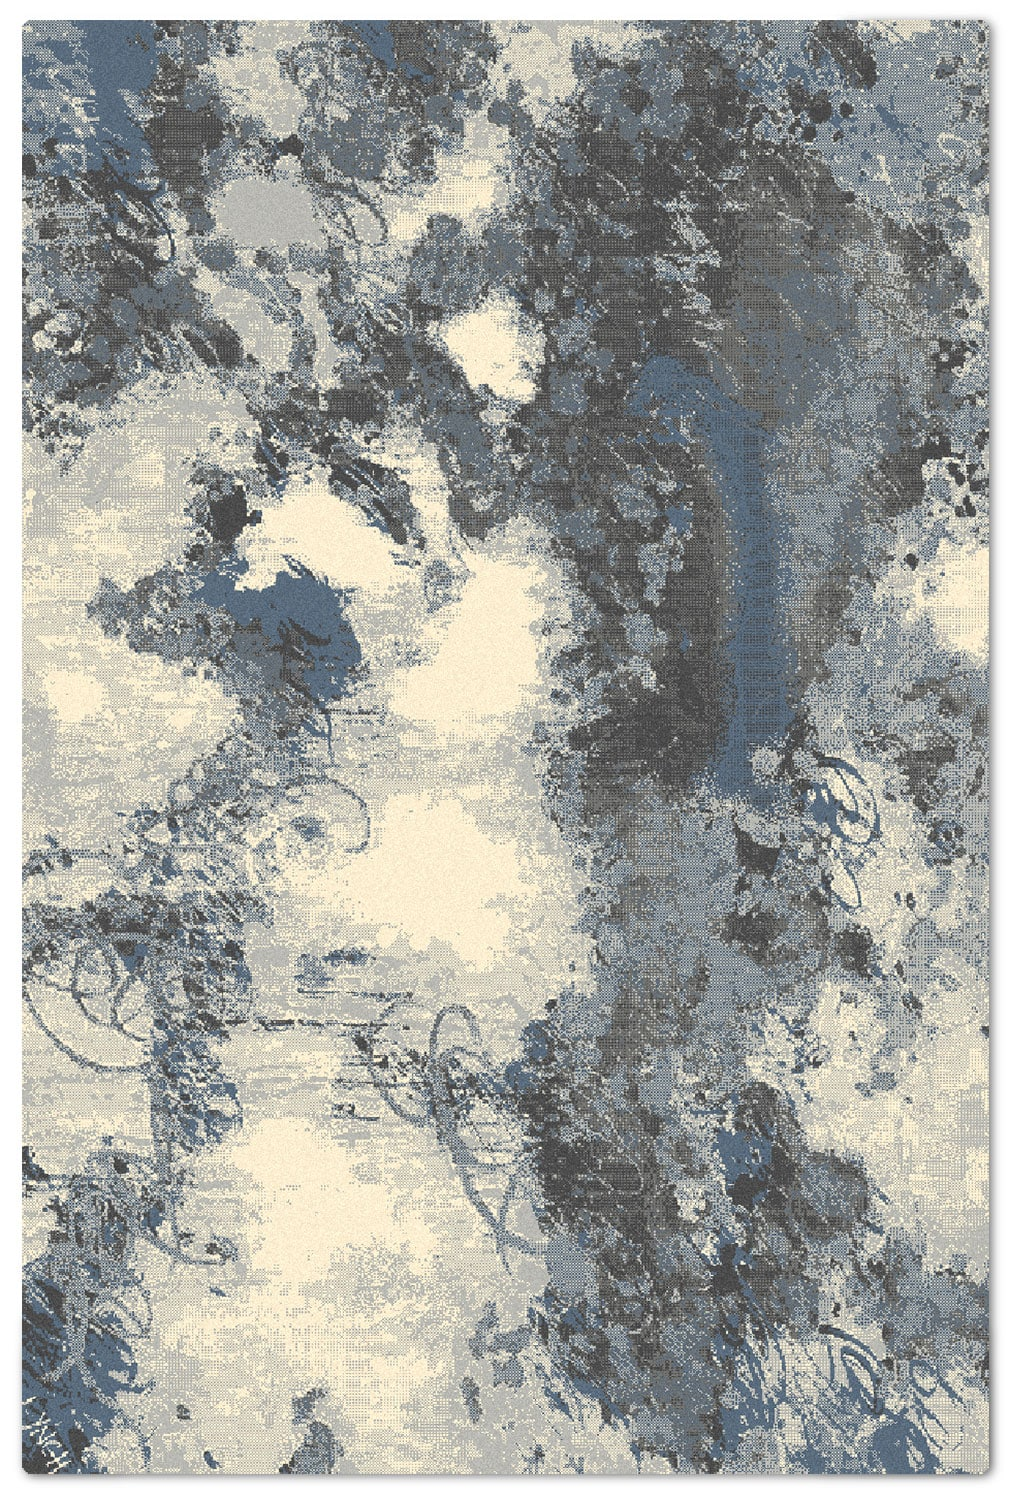 Rugs - Urban Blue 5' x 8' Area Rug - Blue, Grey and White